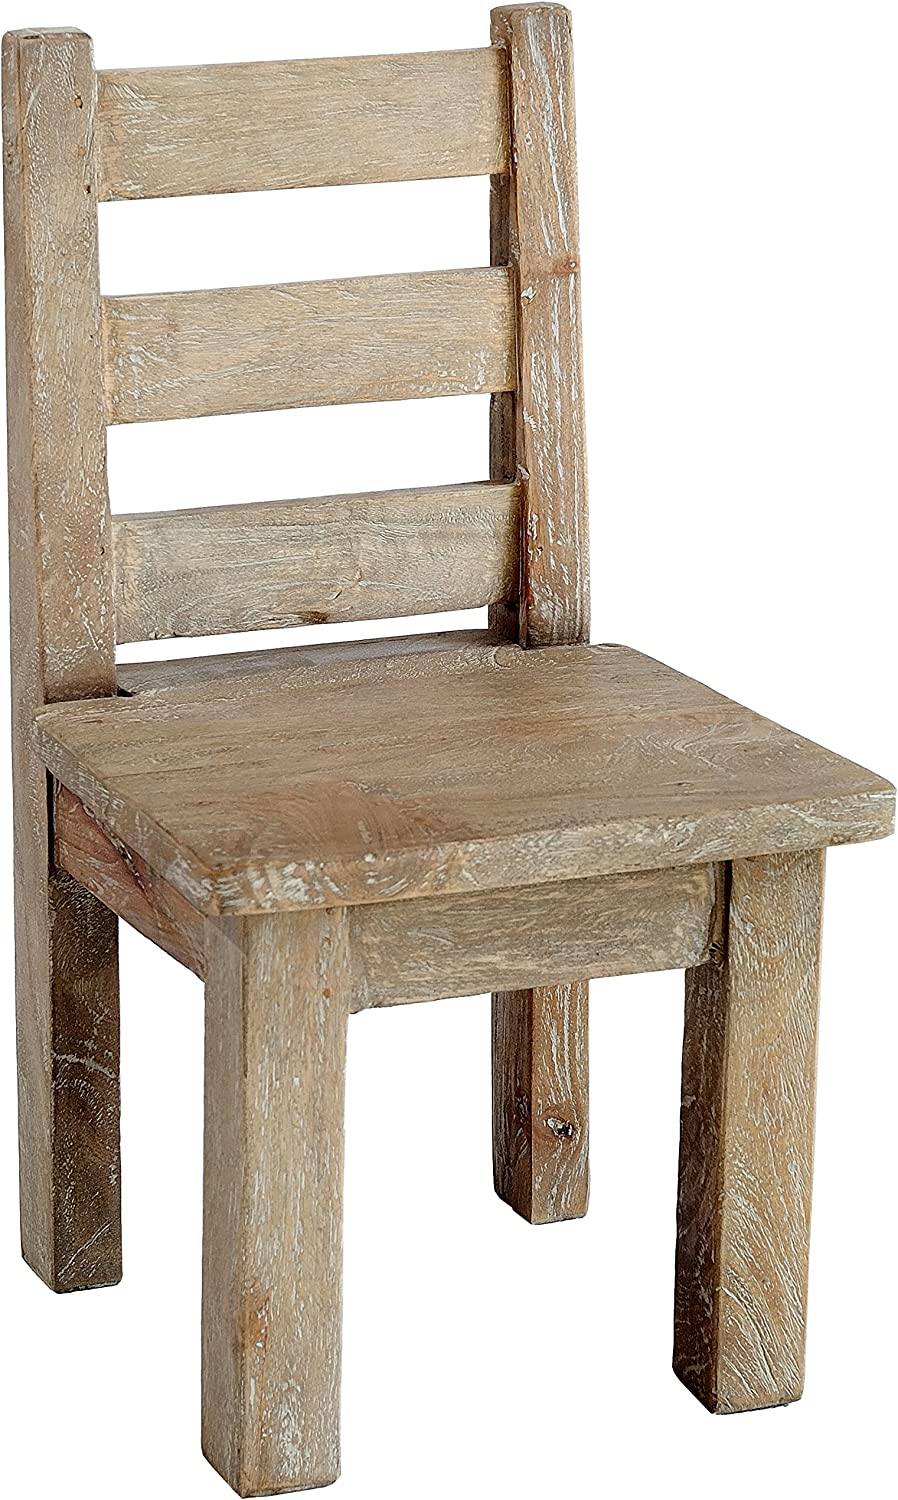 Complete Free Shipping Casual Elements Child Chair Set of shipfree Grey Wash Rustic Mango 2